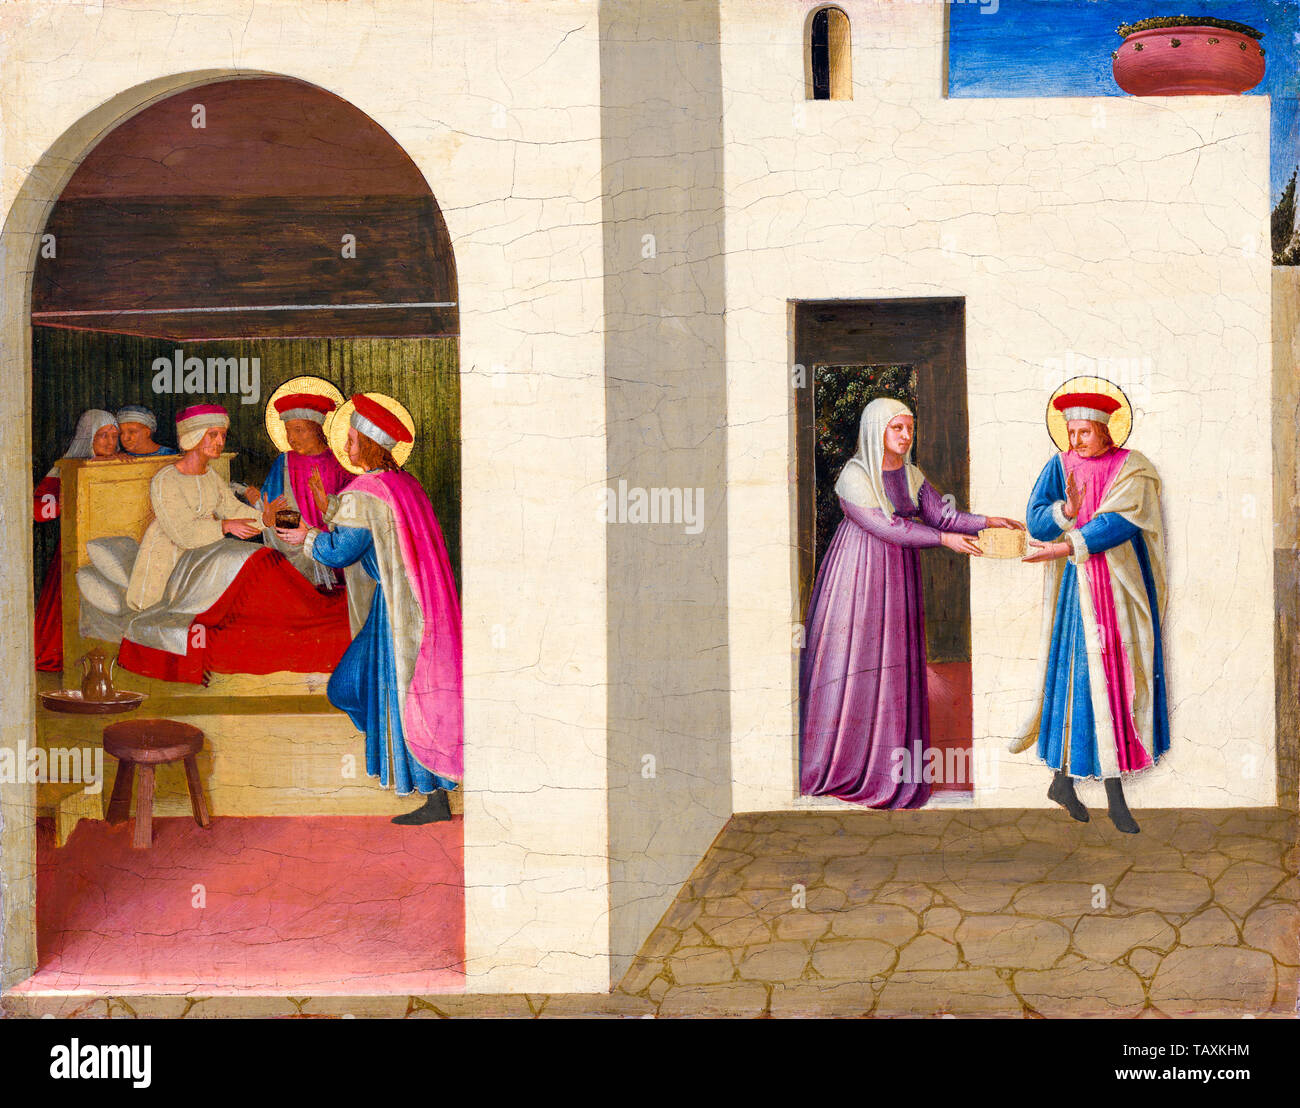 Fra Angelico, The Healing of Palladia by Saint Cosmas and Saint Damian, painting, circa 1438 - Stock Image